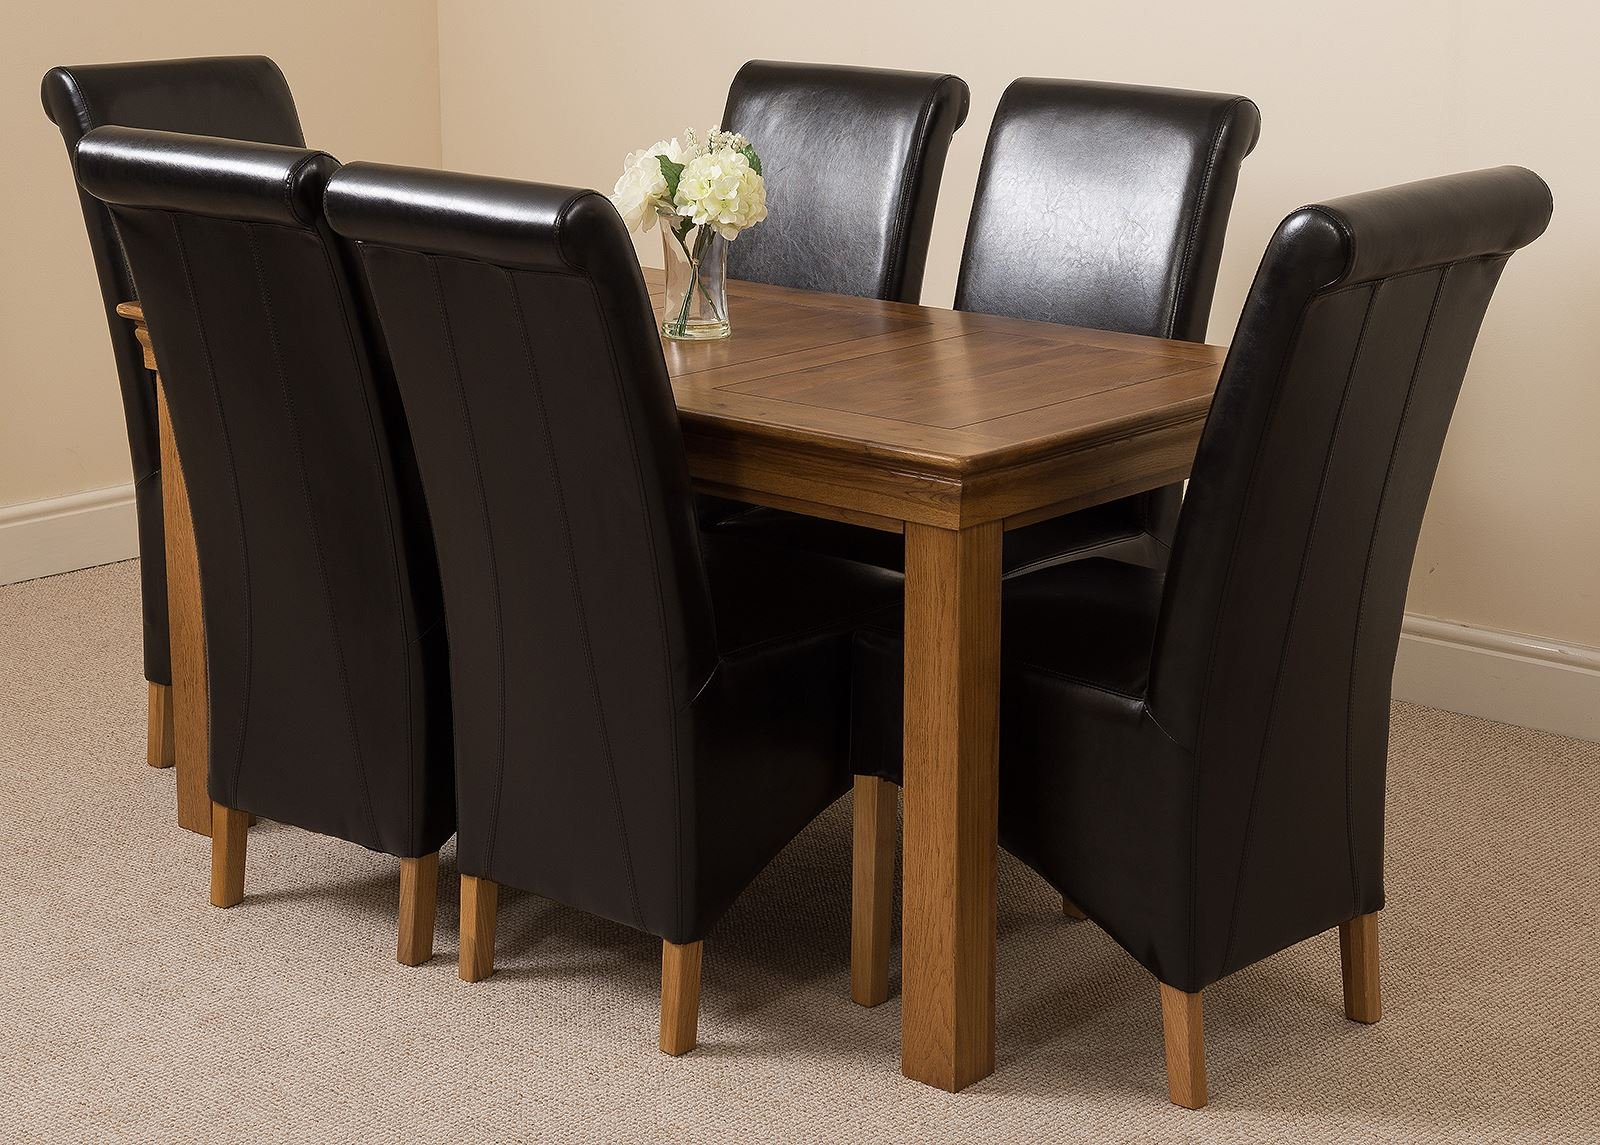 81RFAYdTwwL - French Rustic Solid Oak 150 cm Dining Table with 4 or 6 Montana Dining Chairs